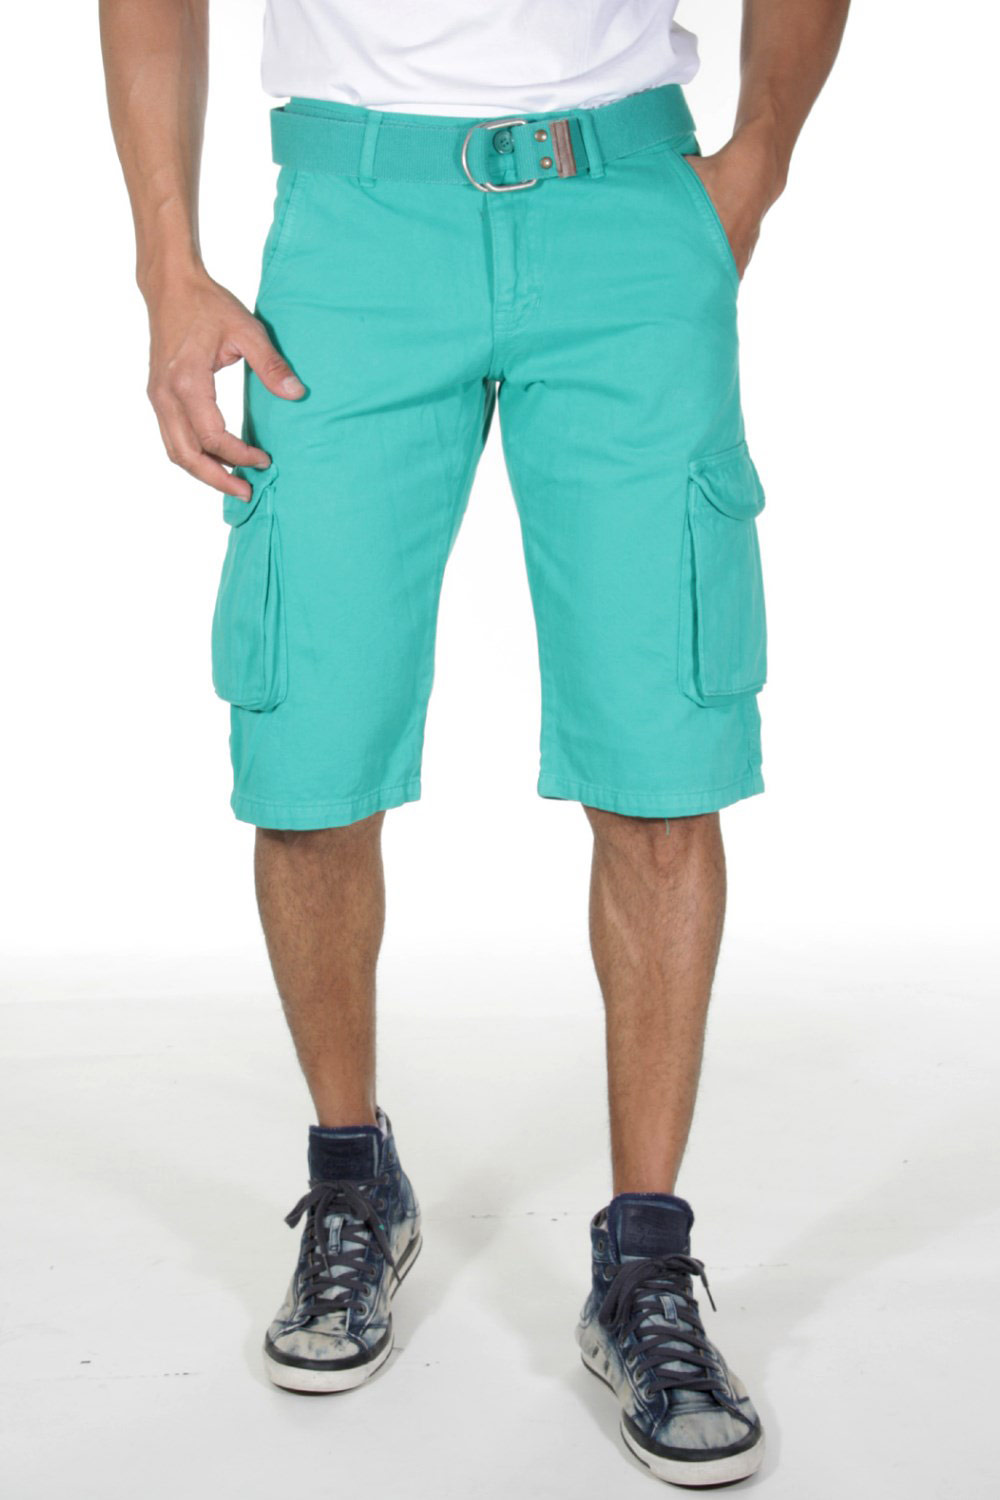 MEN LIFE Shorts auf oboy.de